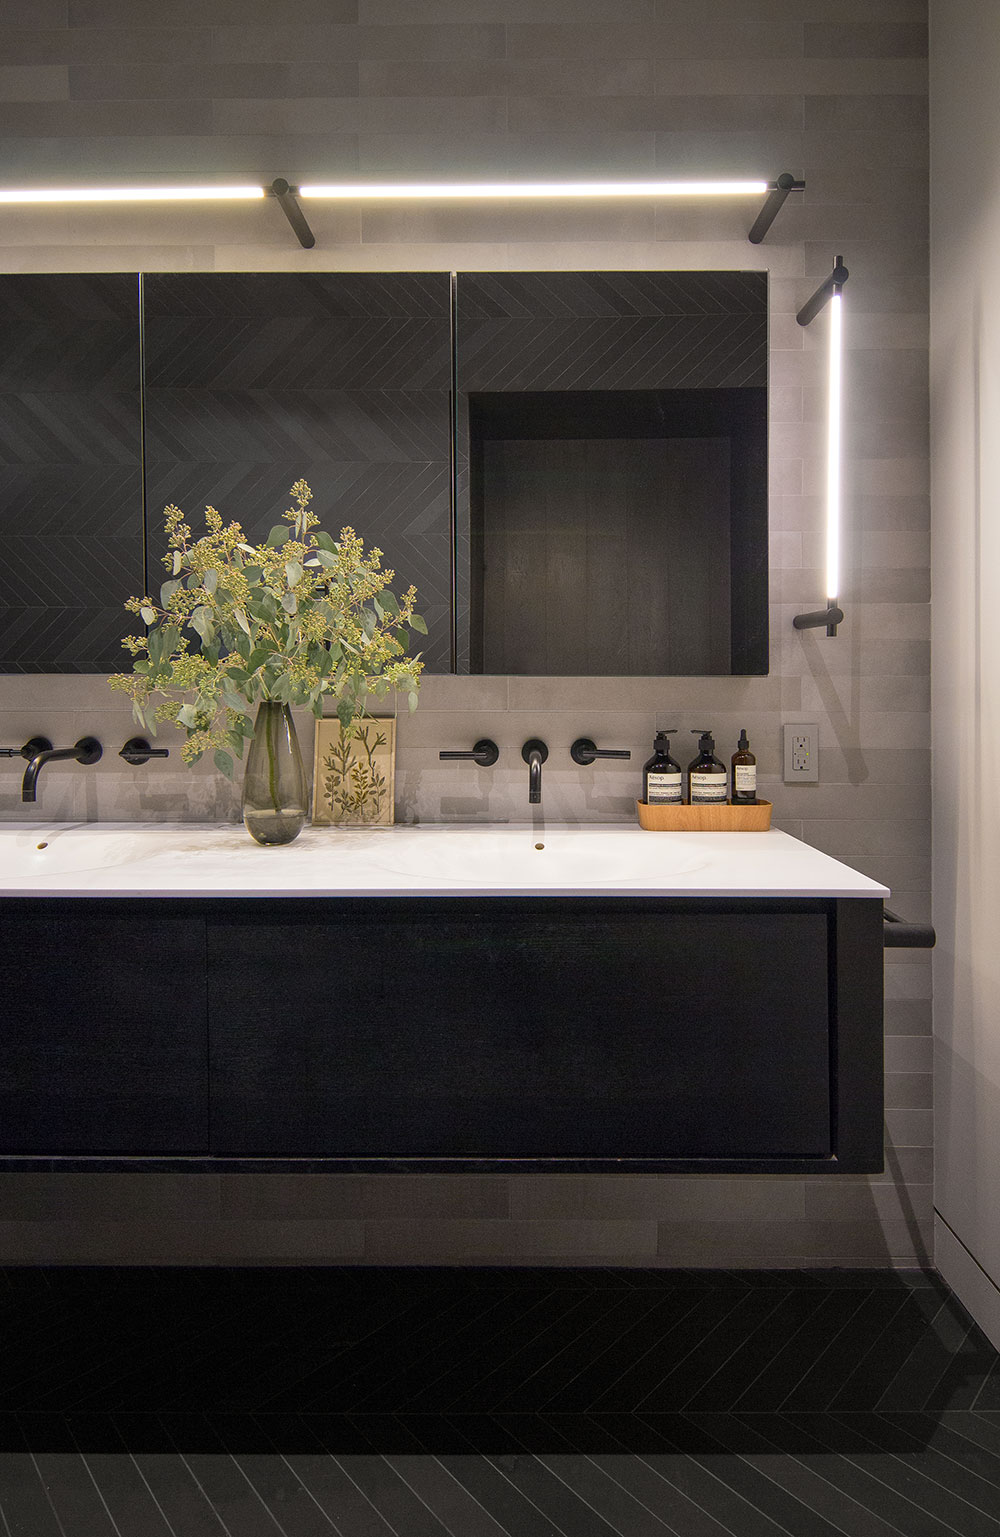 Detail of the vanity and lighting on the master bathroom of the Loft renovation project in Chelsea, New York City designed by the architecture studio Danny Forster & Architecture